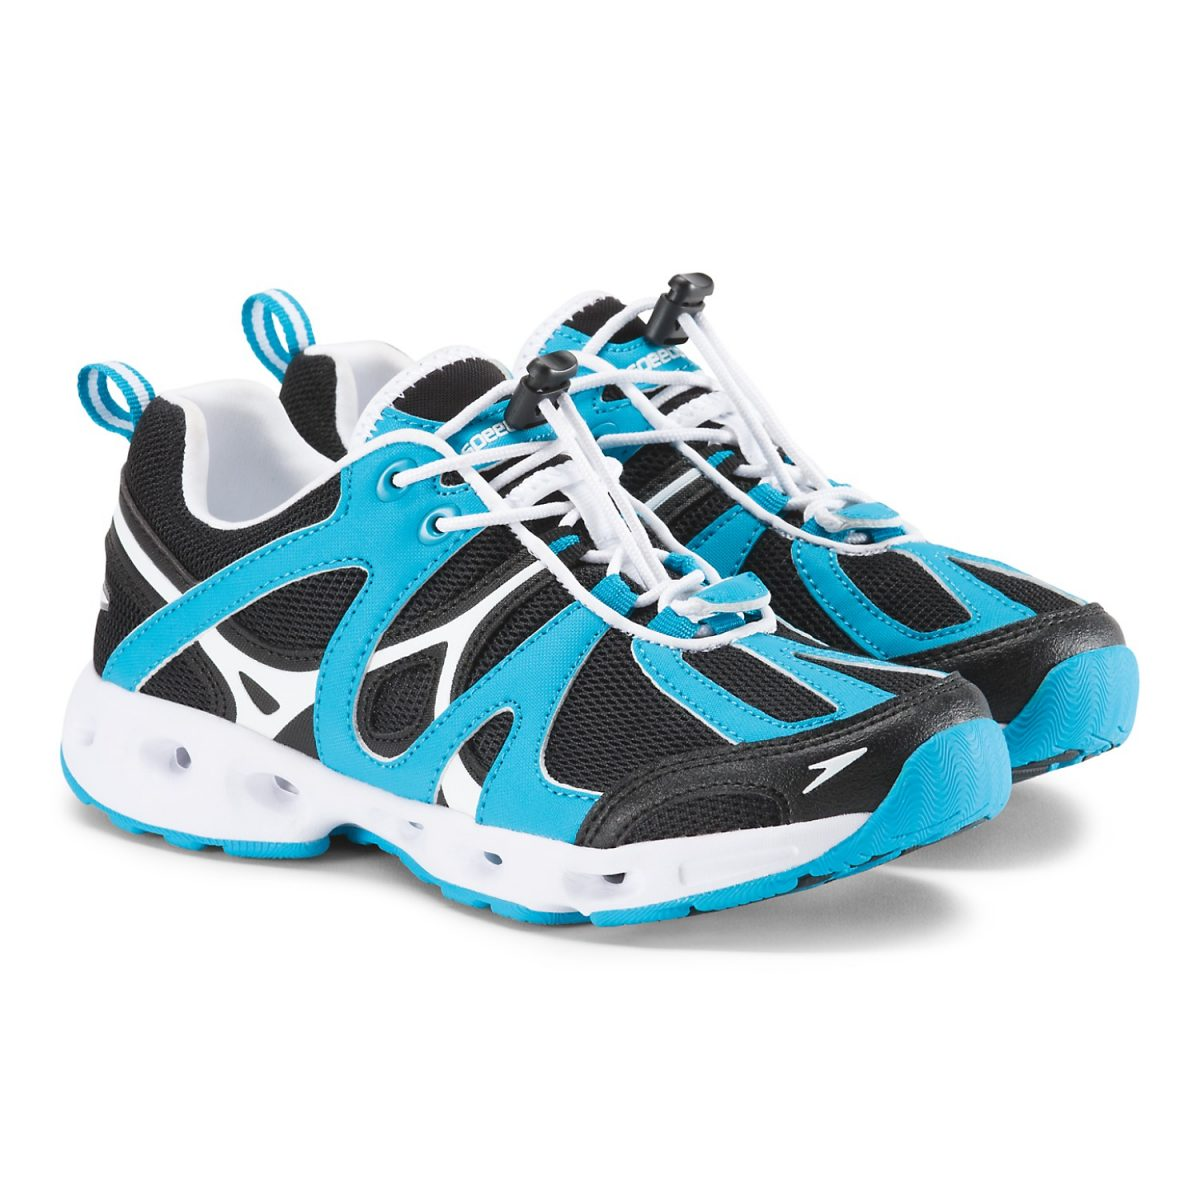 Women's Hydro Comfort 4.0 Water Shoes